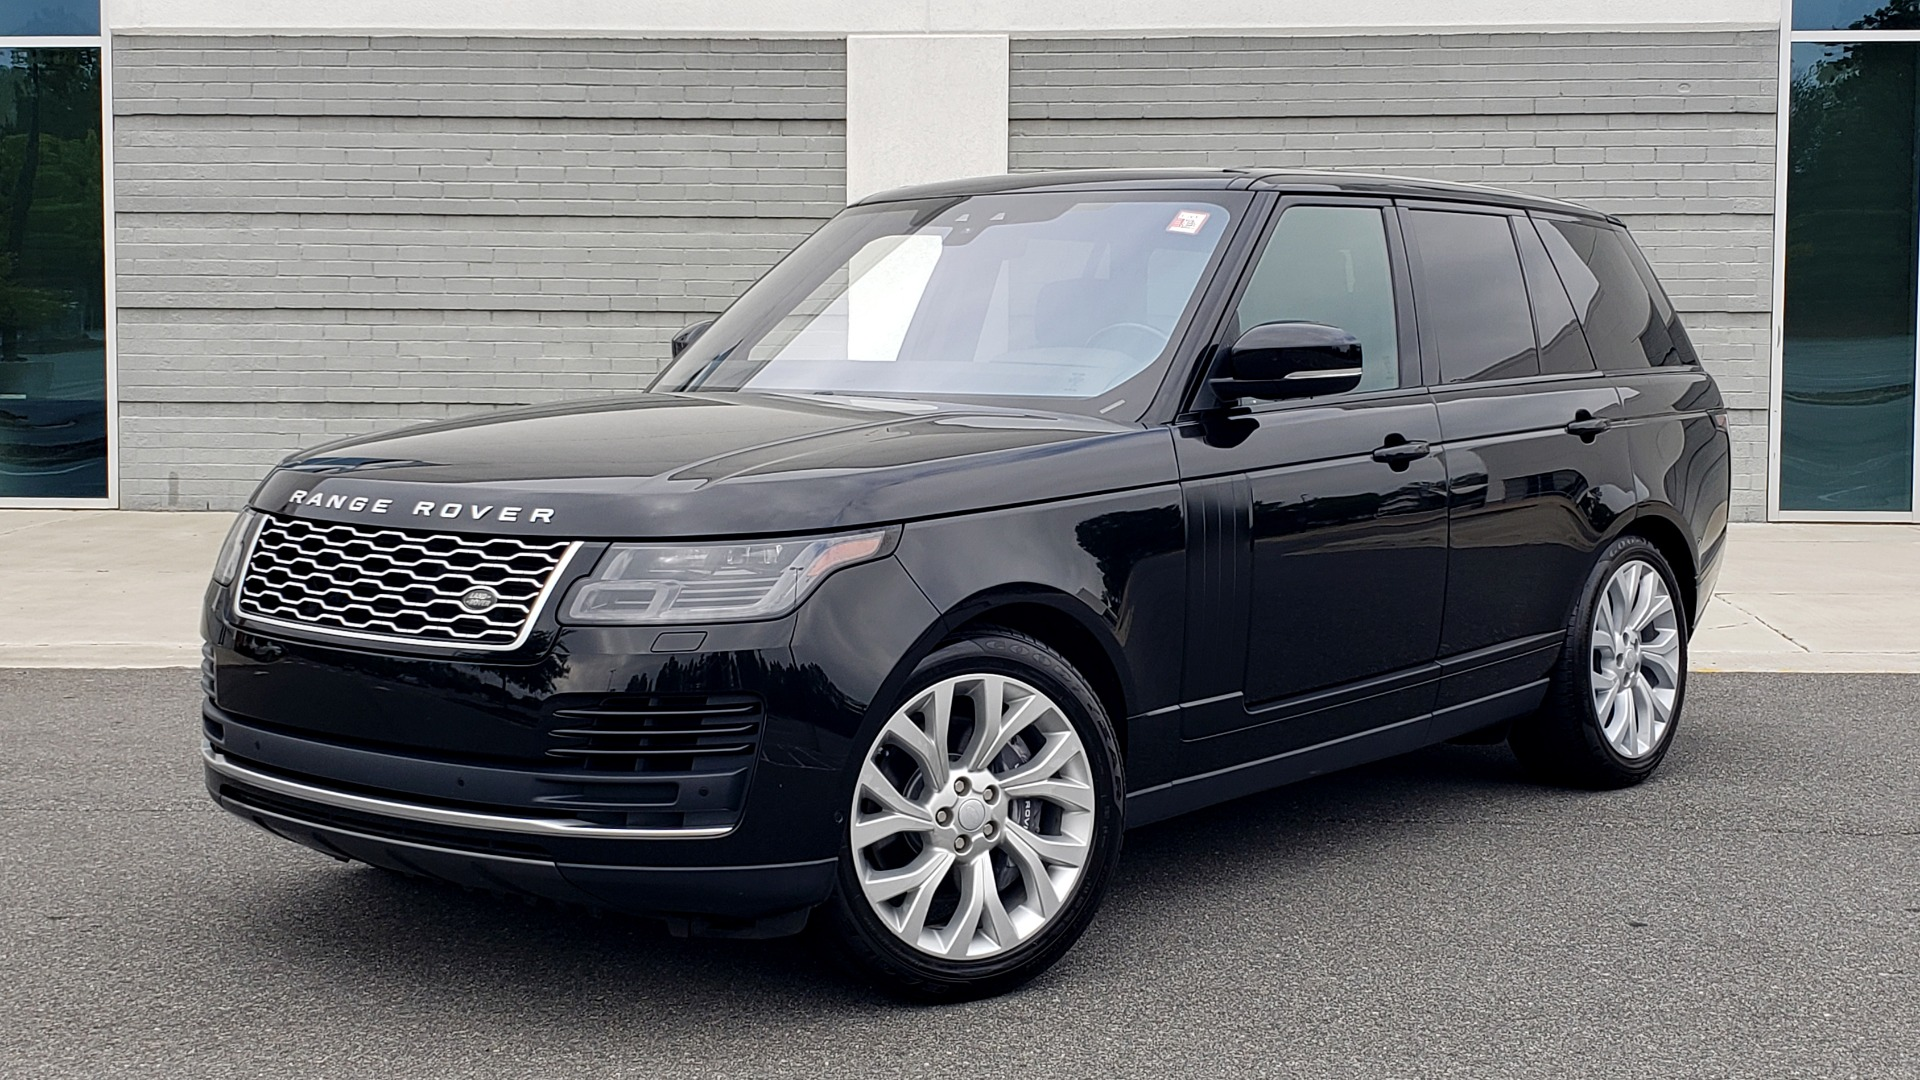 Used 2018 Land Rover RANGE ROVER SUPERCHARGED V8 / DRIVE PRO / NAV / PANO-ROOF / REARVIEW for sale $84,995 at Formula Imports in Charlotte NC 28227 3